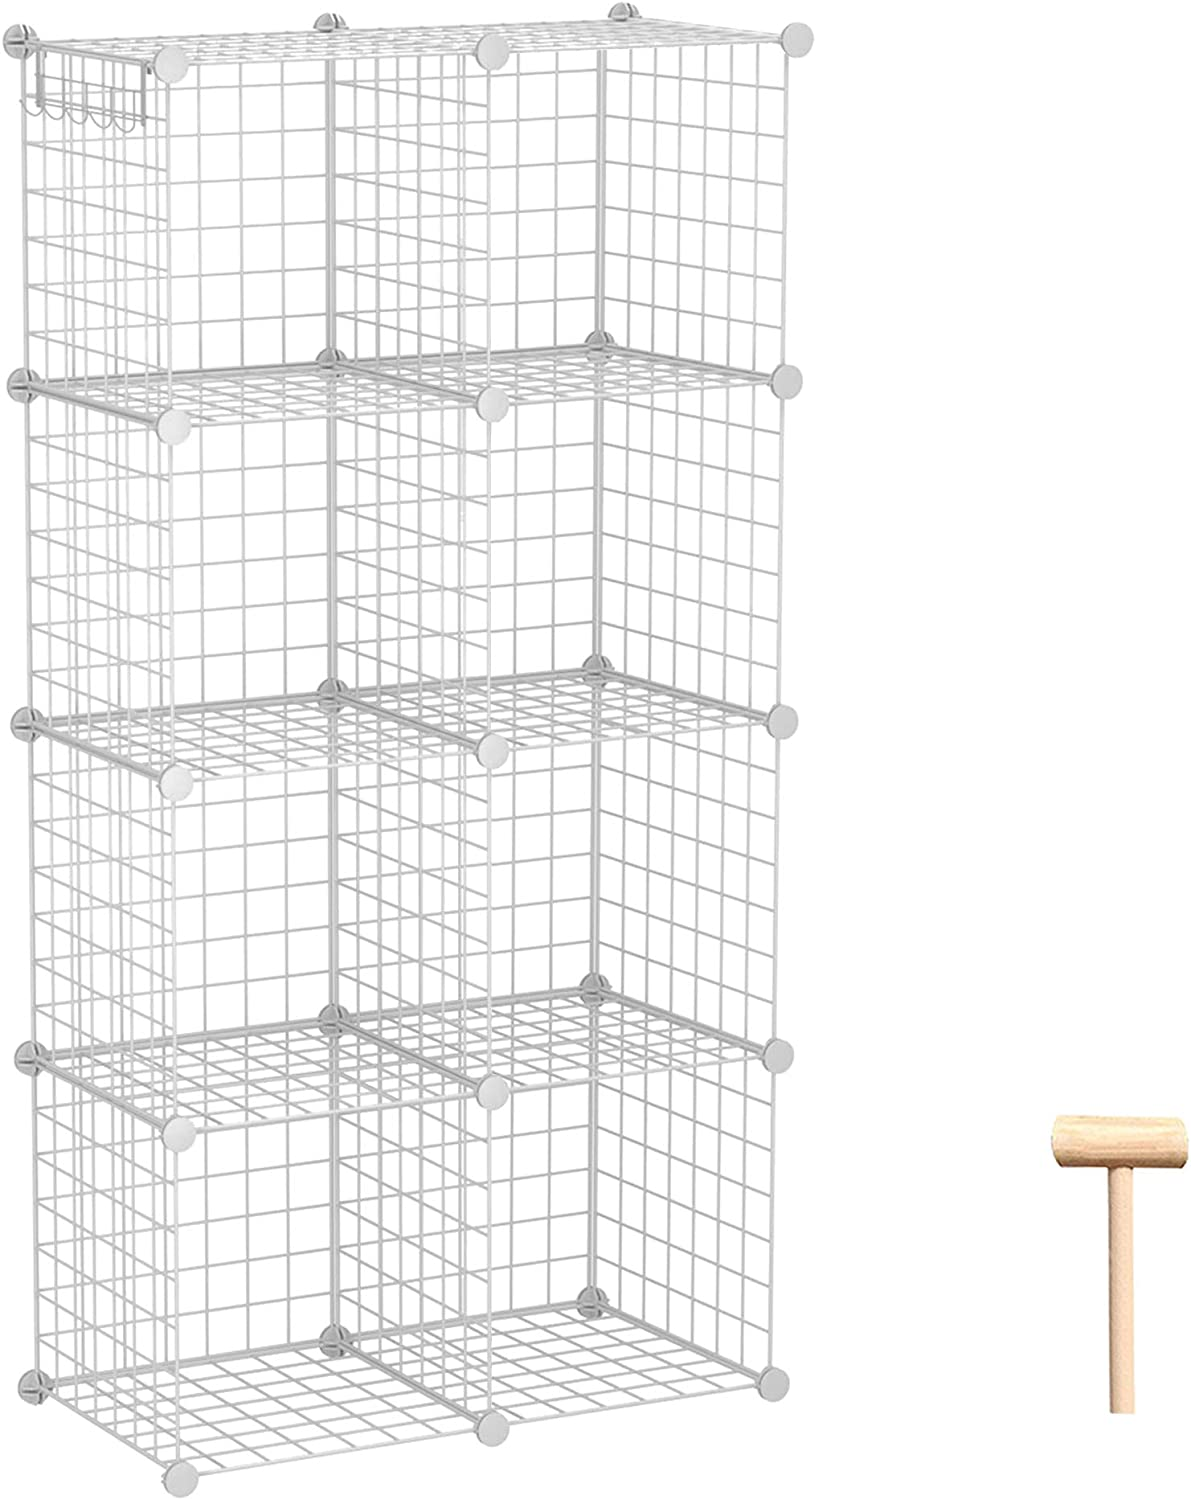 "C&AHOME Wire Storage Cubes, Metal Grids Book Shelf, Modular Shelving Units, Stackable Bookcase, 8 Cubes Closet Organizer for Home, Office, Kids Room, 24.8"" L x12.4 W x 48.4"" H White"